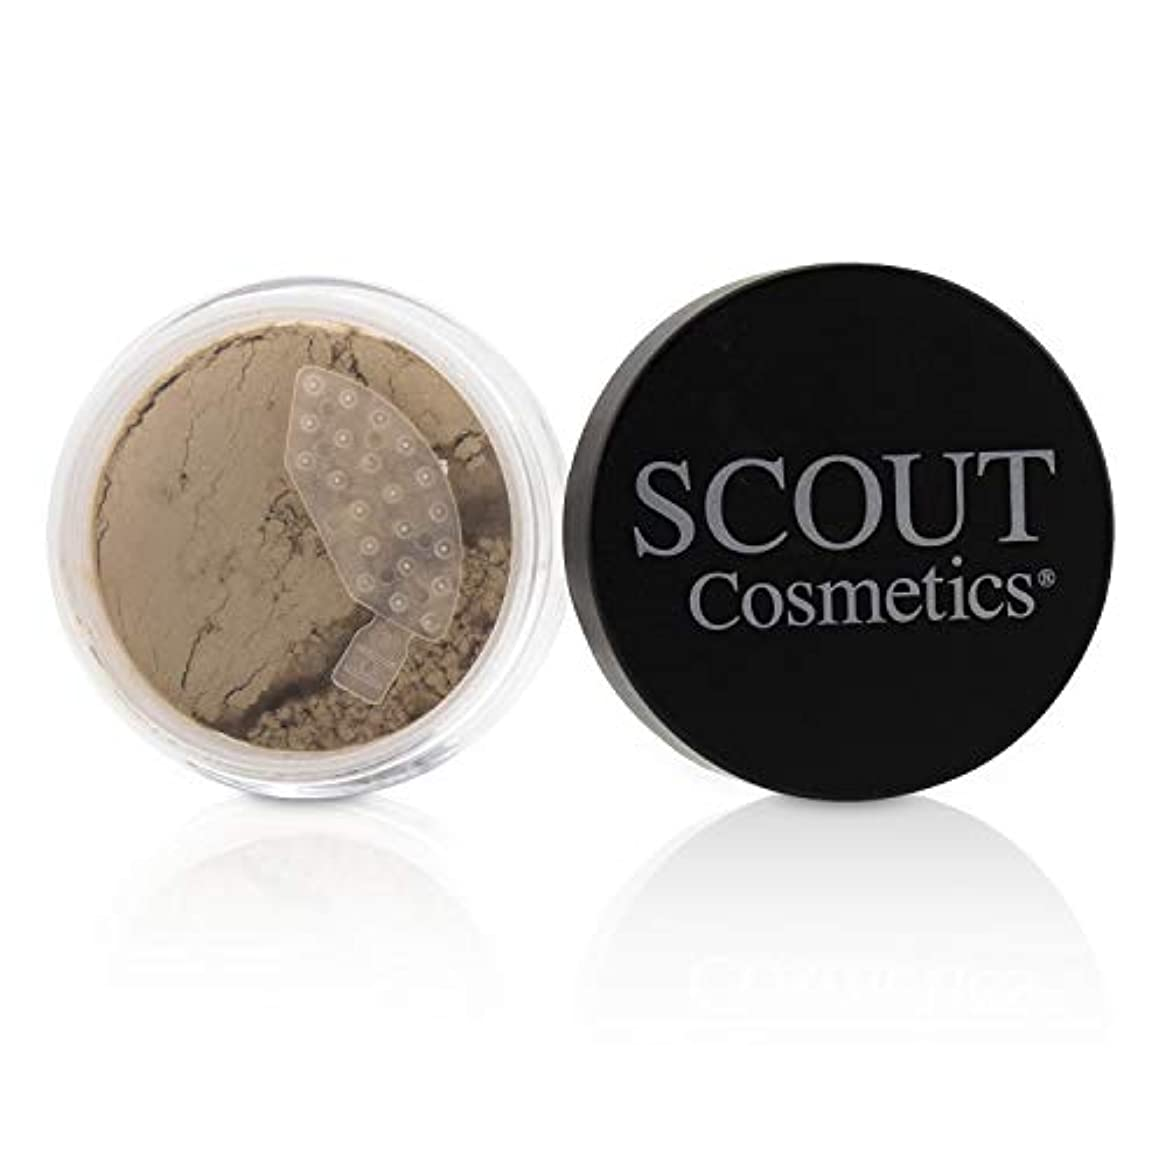 SCOUT Cosmetics Mineral Powder Foundation SPF 20 - # Porcelain 8g/0.28oz並行輸入品